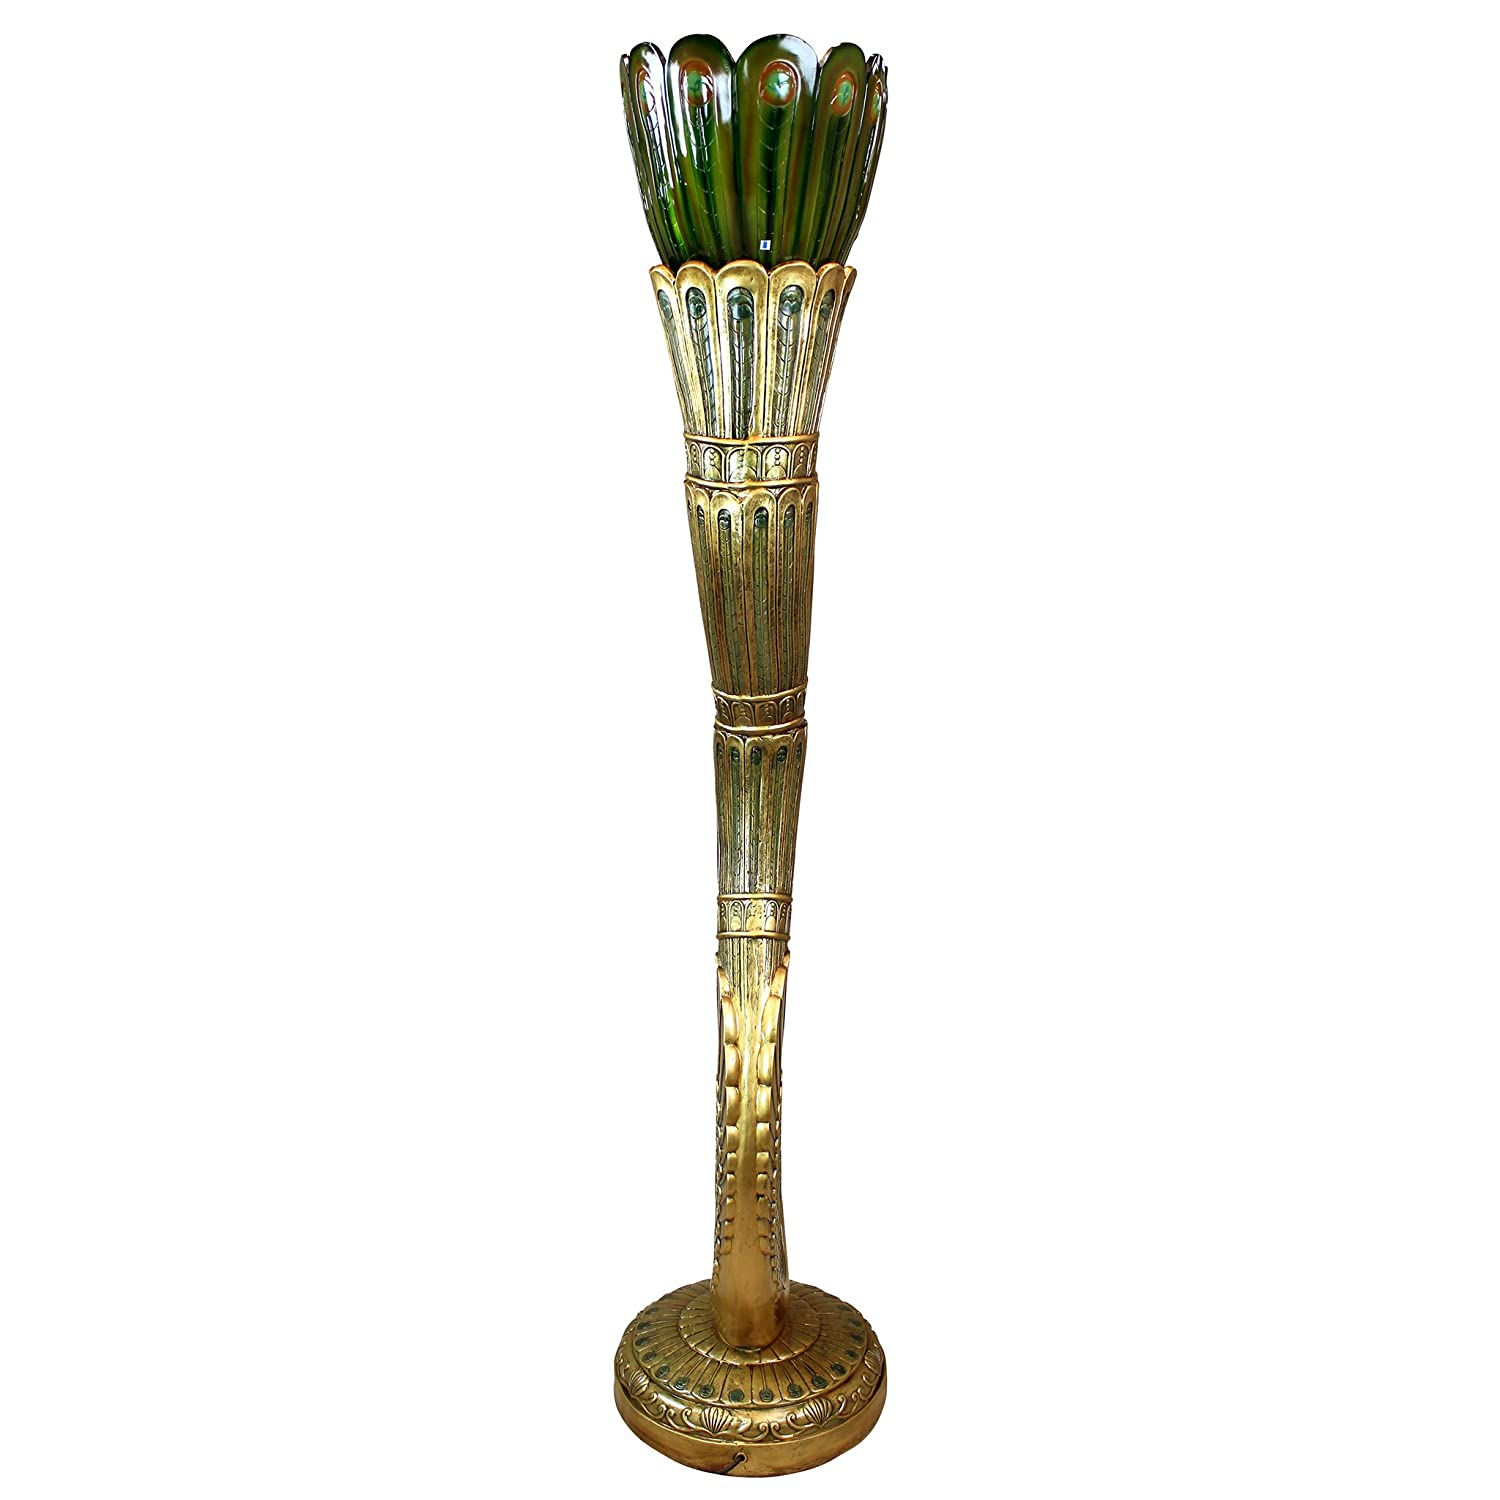 Amazon.com: Design Toscano Art Deco Pea Sculptural Floor Lamp ... on floor stencils, floor pillows, floor frames, floor storage, floor shelves, floor lamps, floor tiles, floor flowers, floor puzzles, floor planters, floor prints, floor baskets, floor candelabras, floor cabinets, floor furniture, floor sofas, floor markers, floor sculptures, floor glass, floor games,